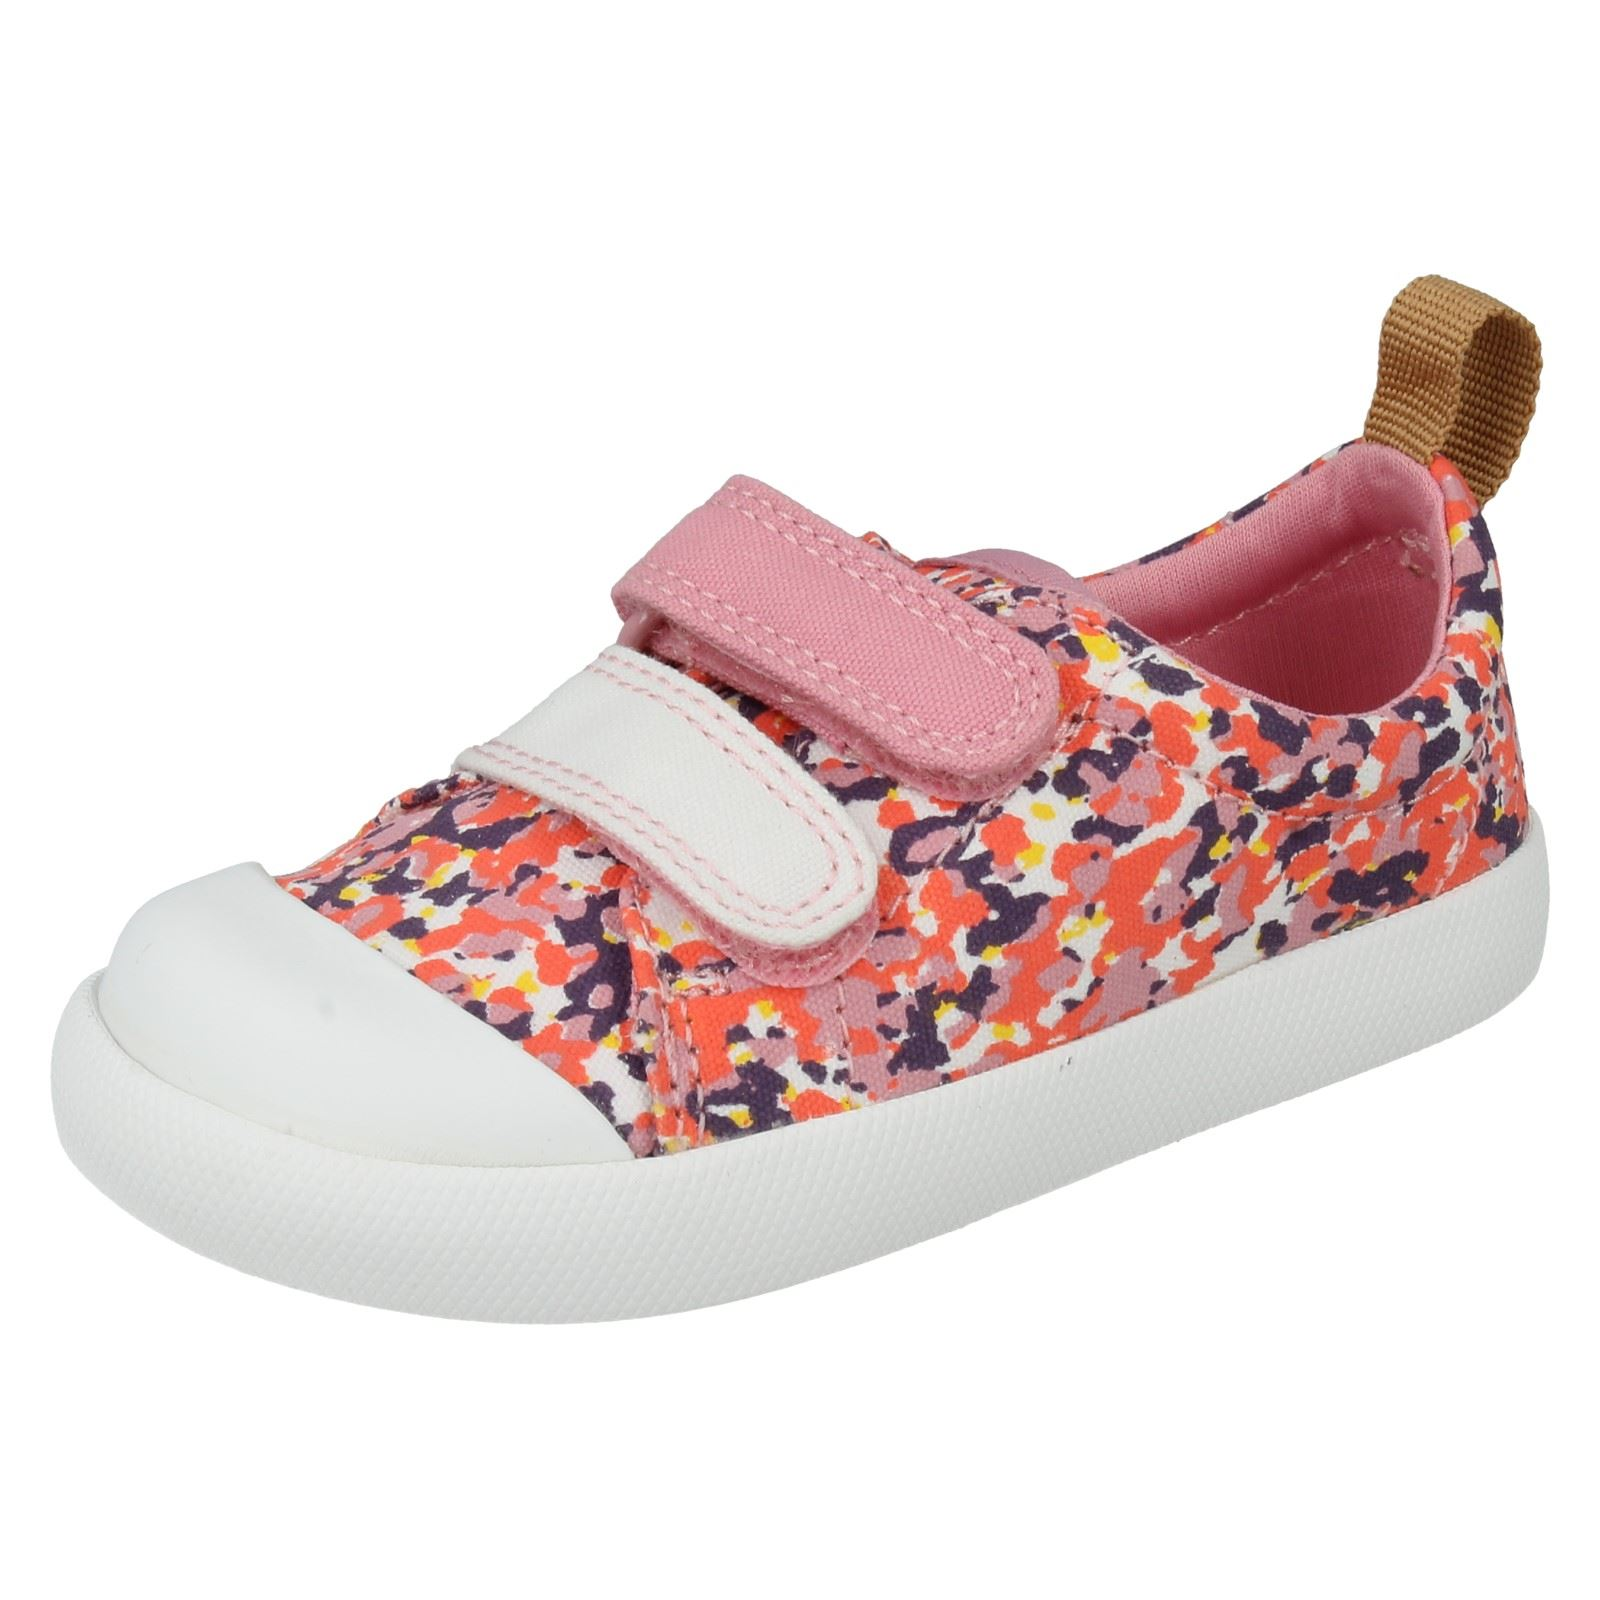 Girls Clarks Doodles First Shoes Label Halcy Hati